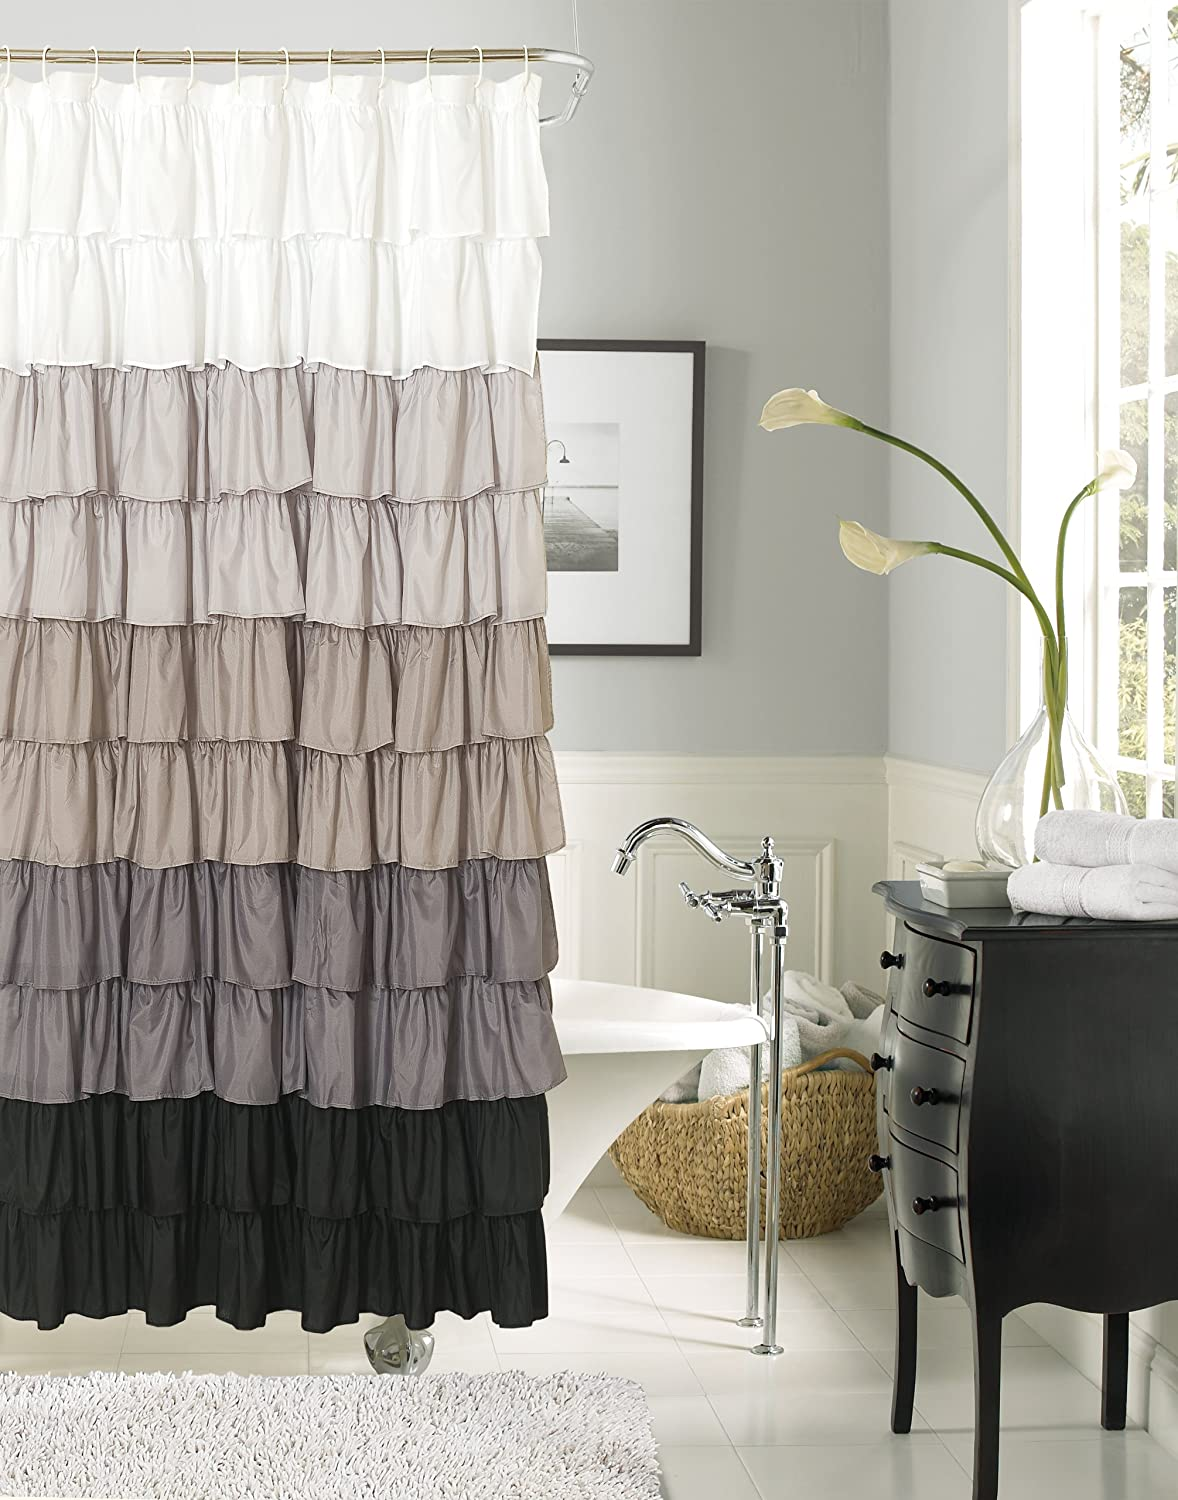 Amazon.com: Dainty Home Flamenco Ruffled Shower Curtain, 72 by 72 ...